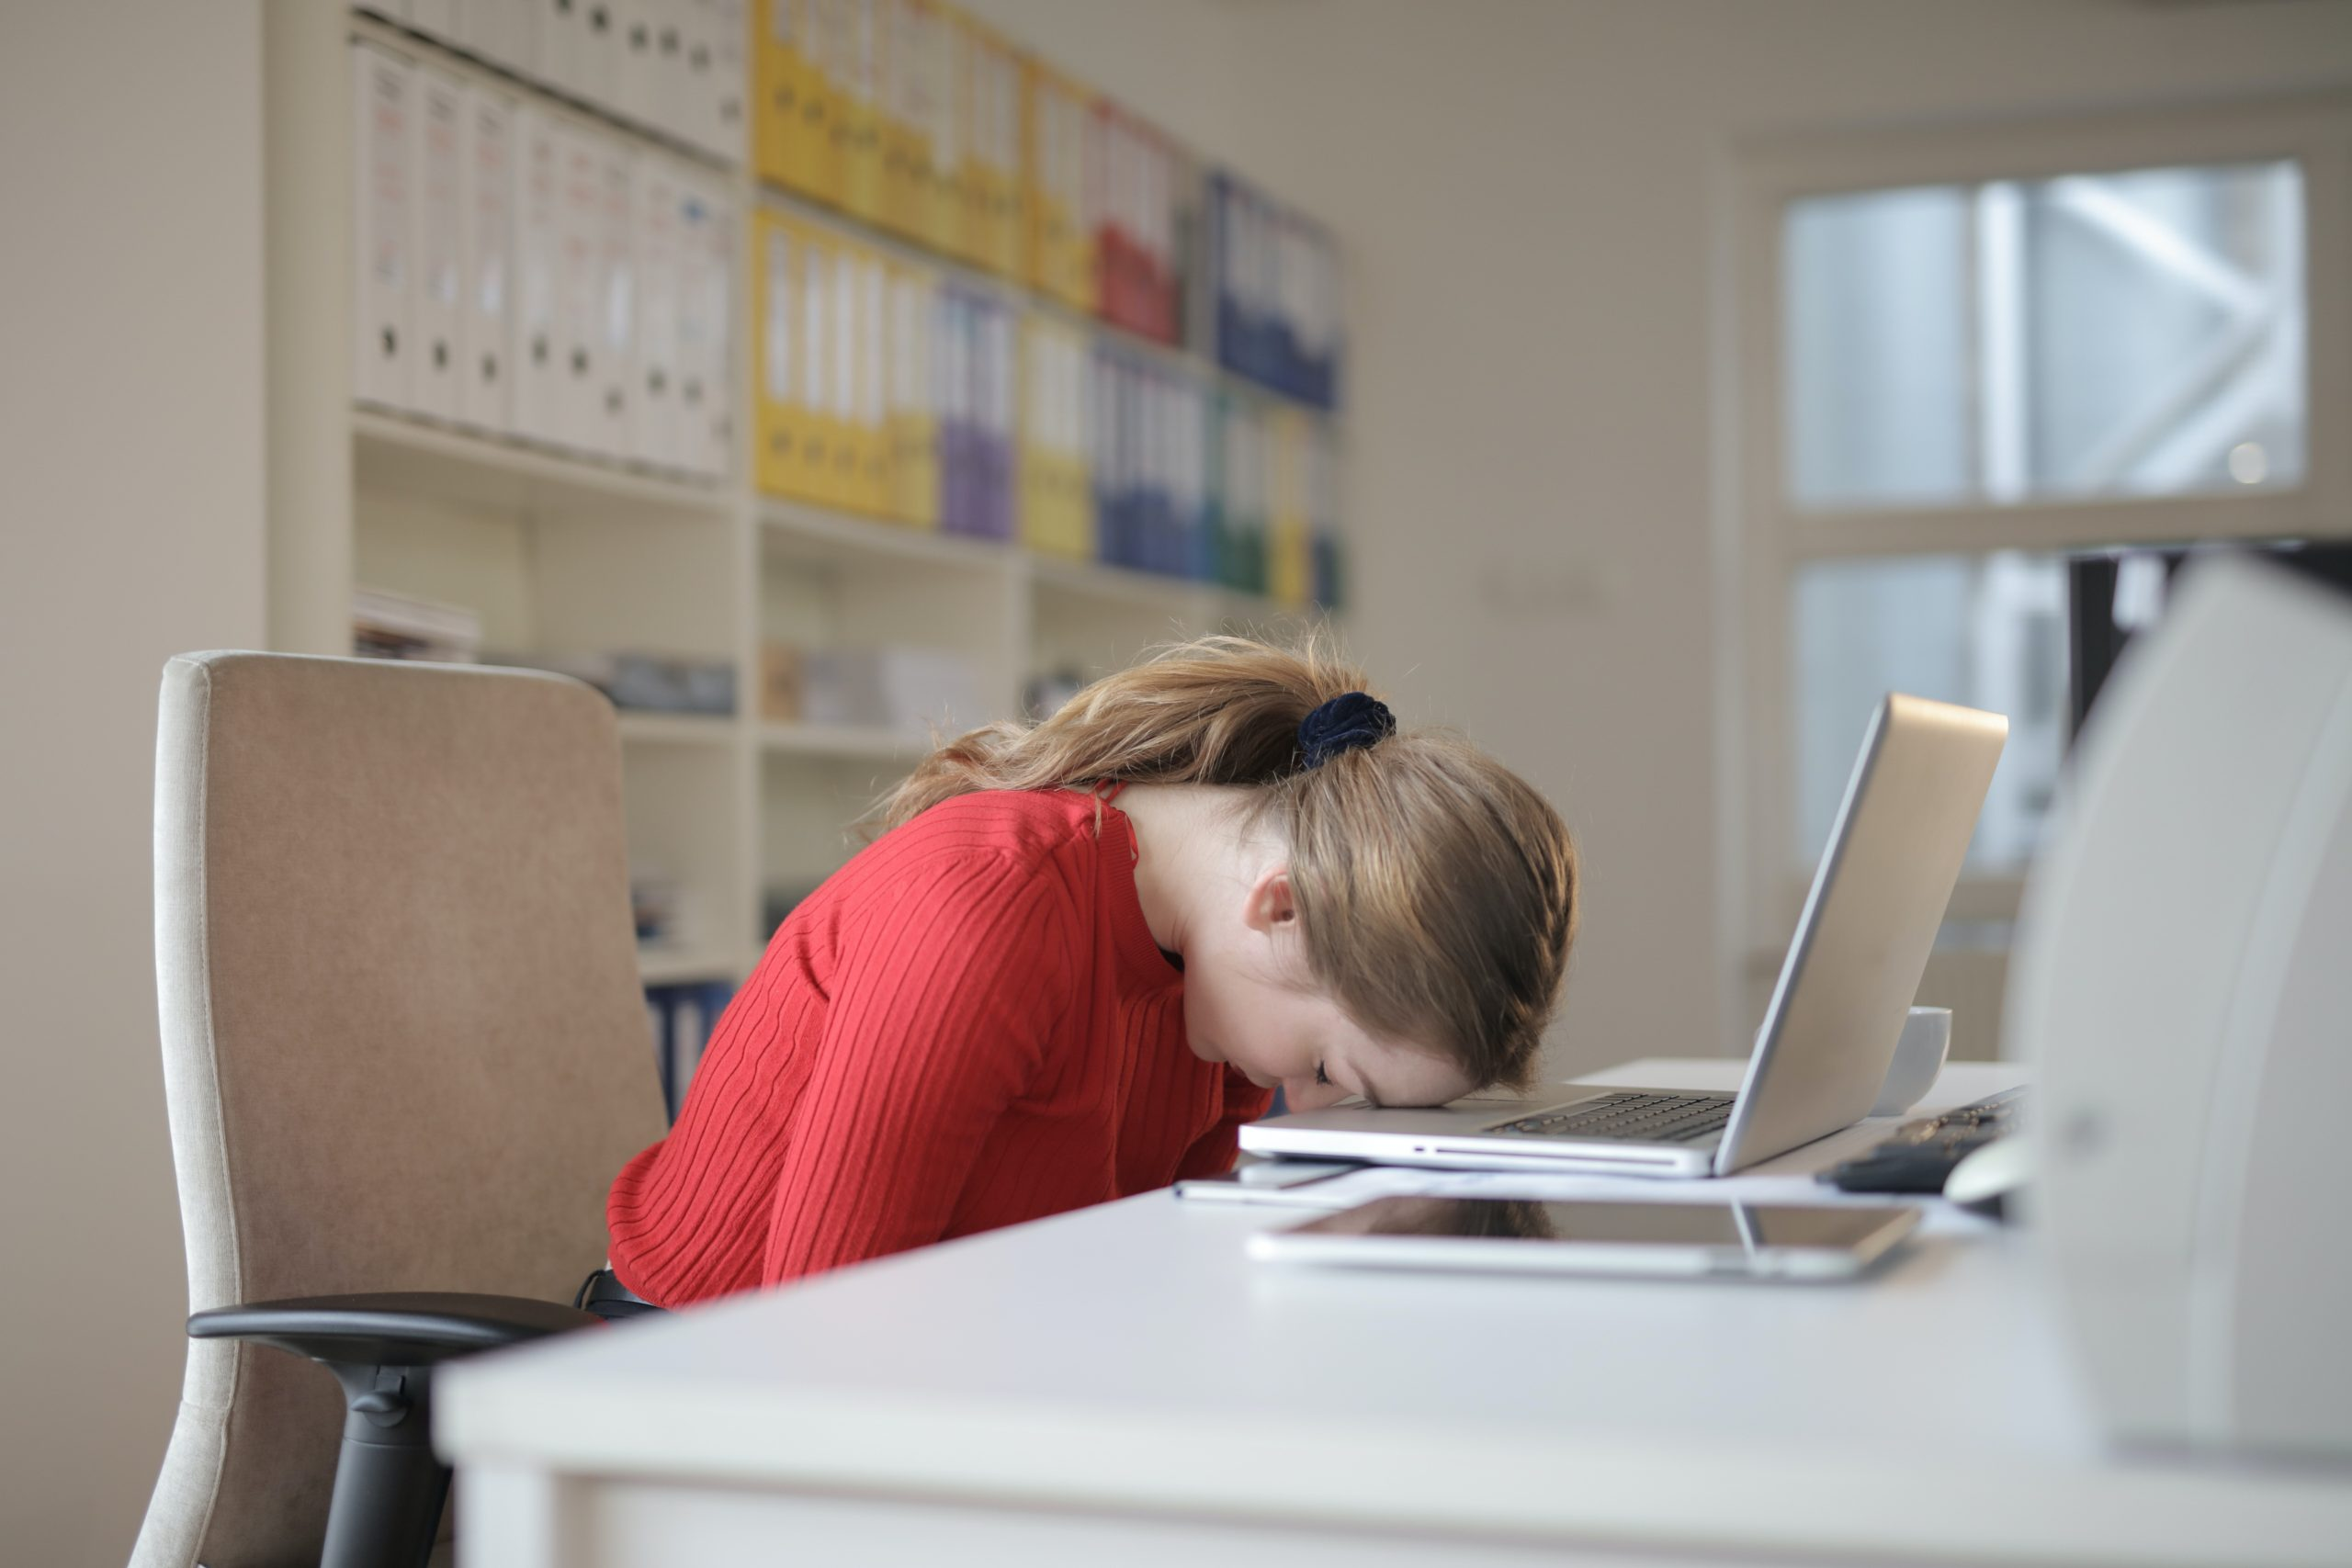 How to overcome pandemic fatigue